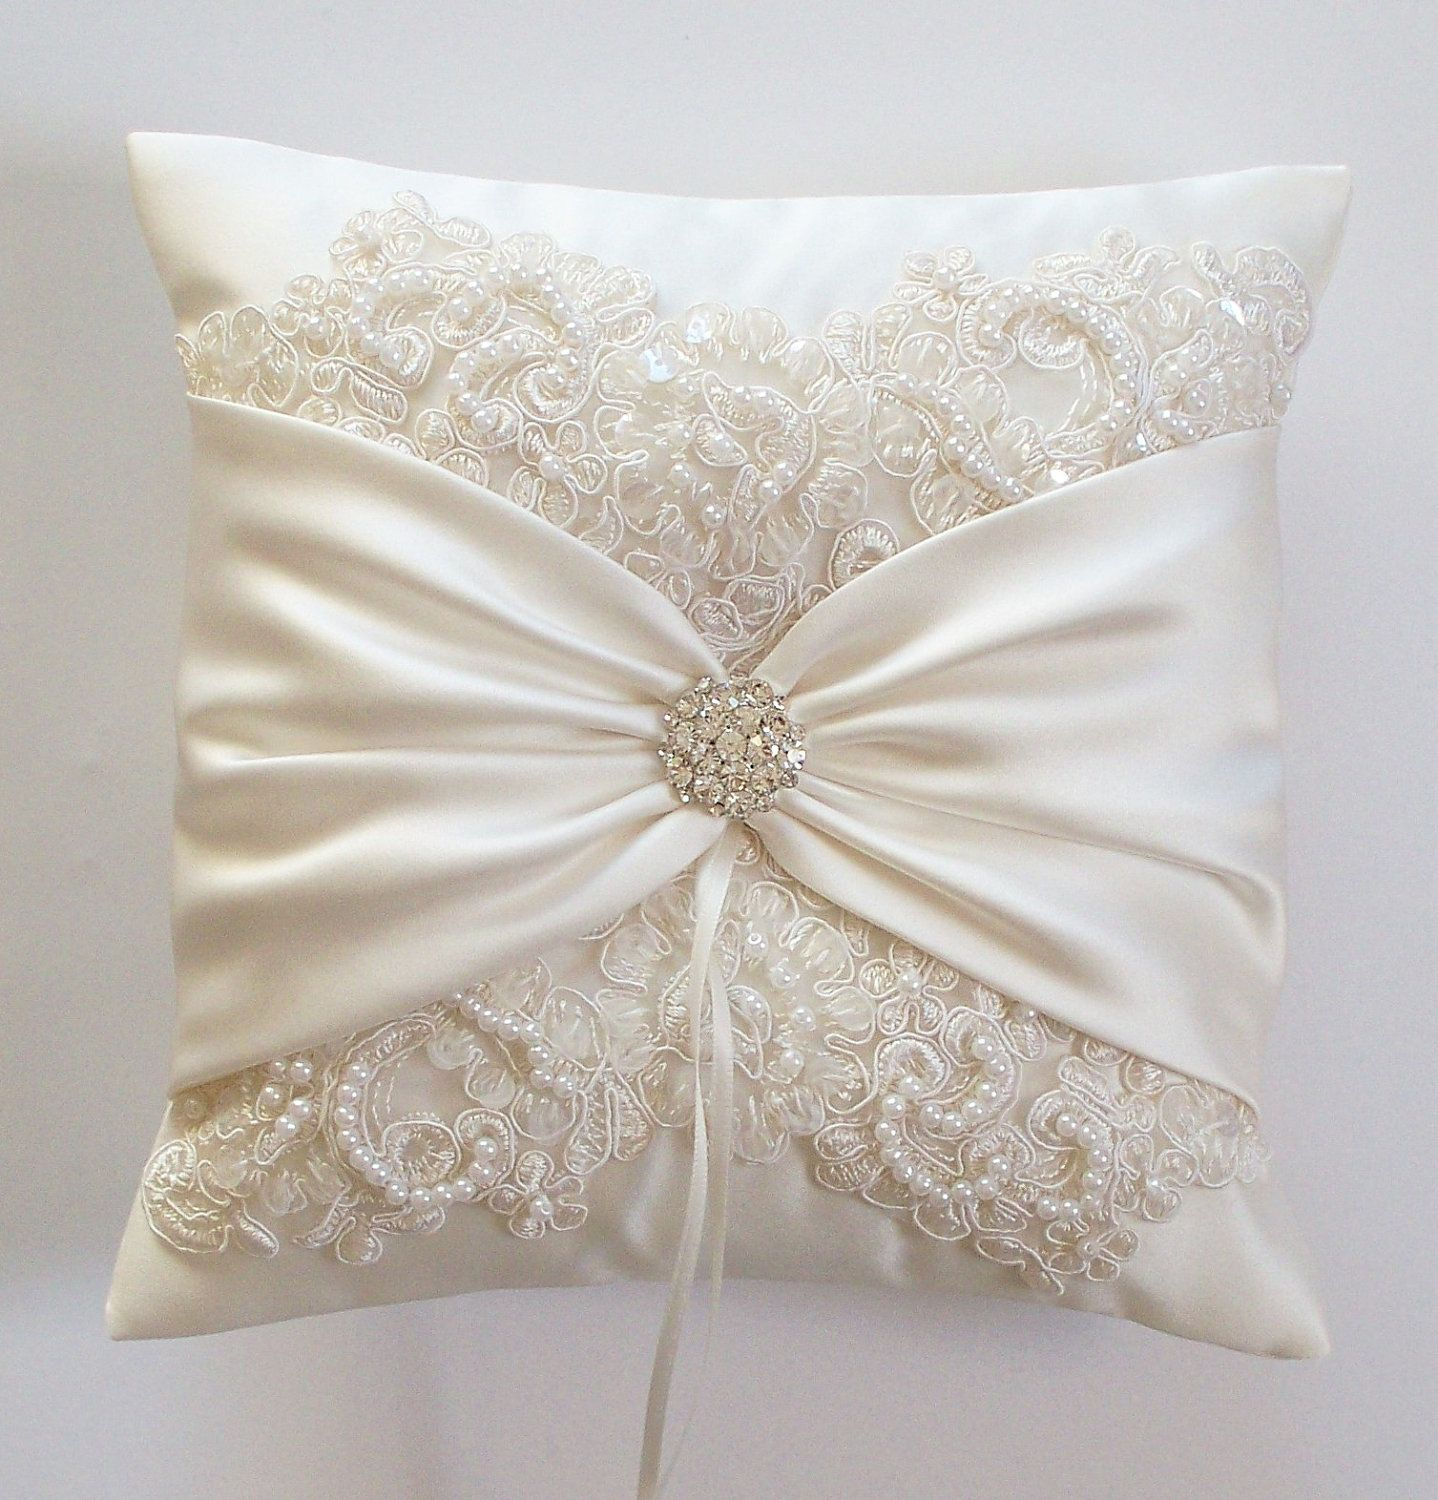 Wedding Ring Pillow With Beaded Alencon Lace Ivory Satin Sash Cinched By Crystals The Miranda 51 50 Via Etsy